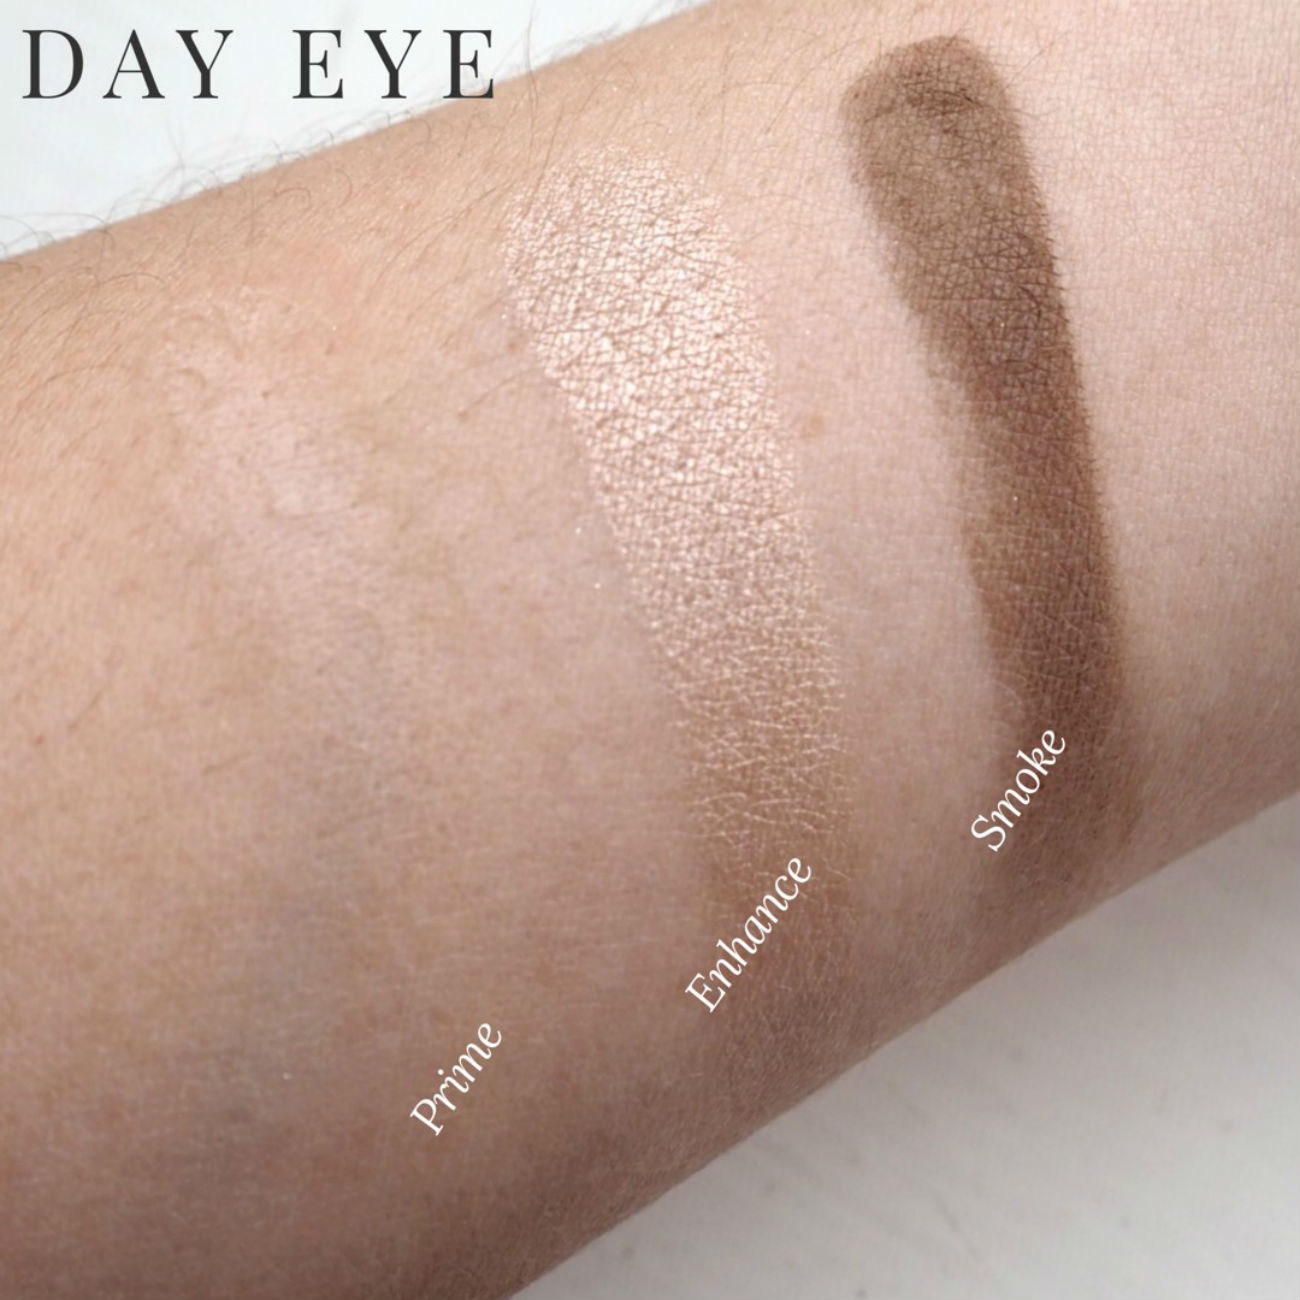 Charlotte Tilbury Instant Eye Palette, swatch, swatches, shades, colours